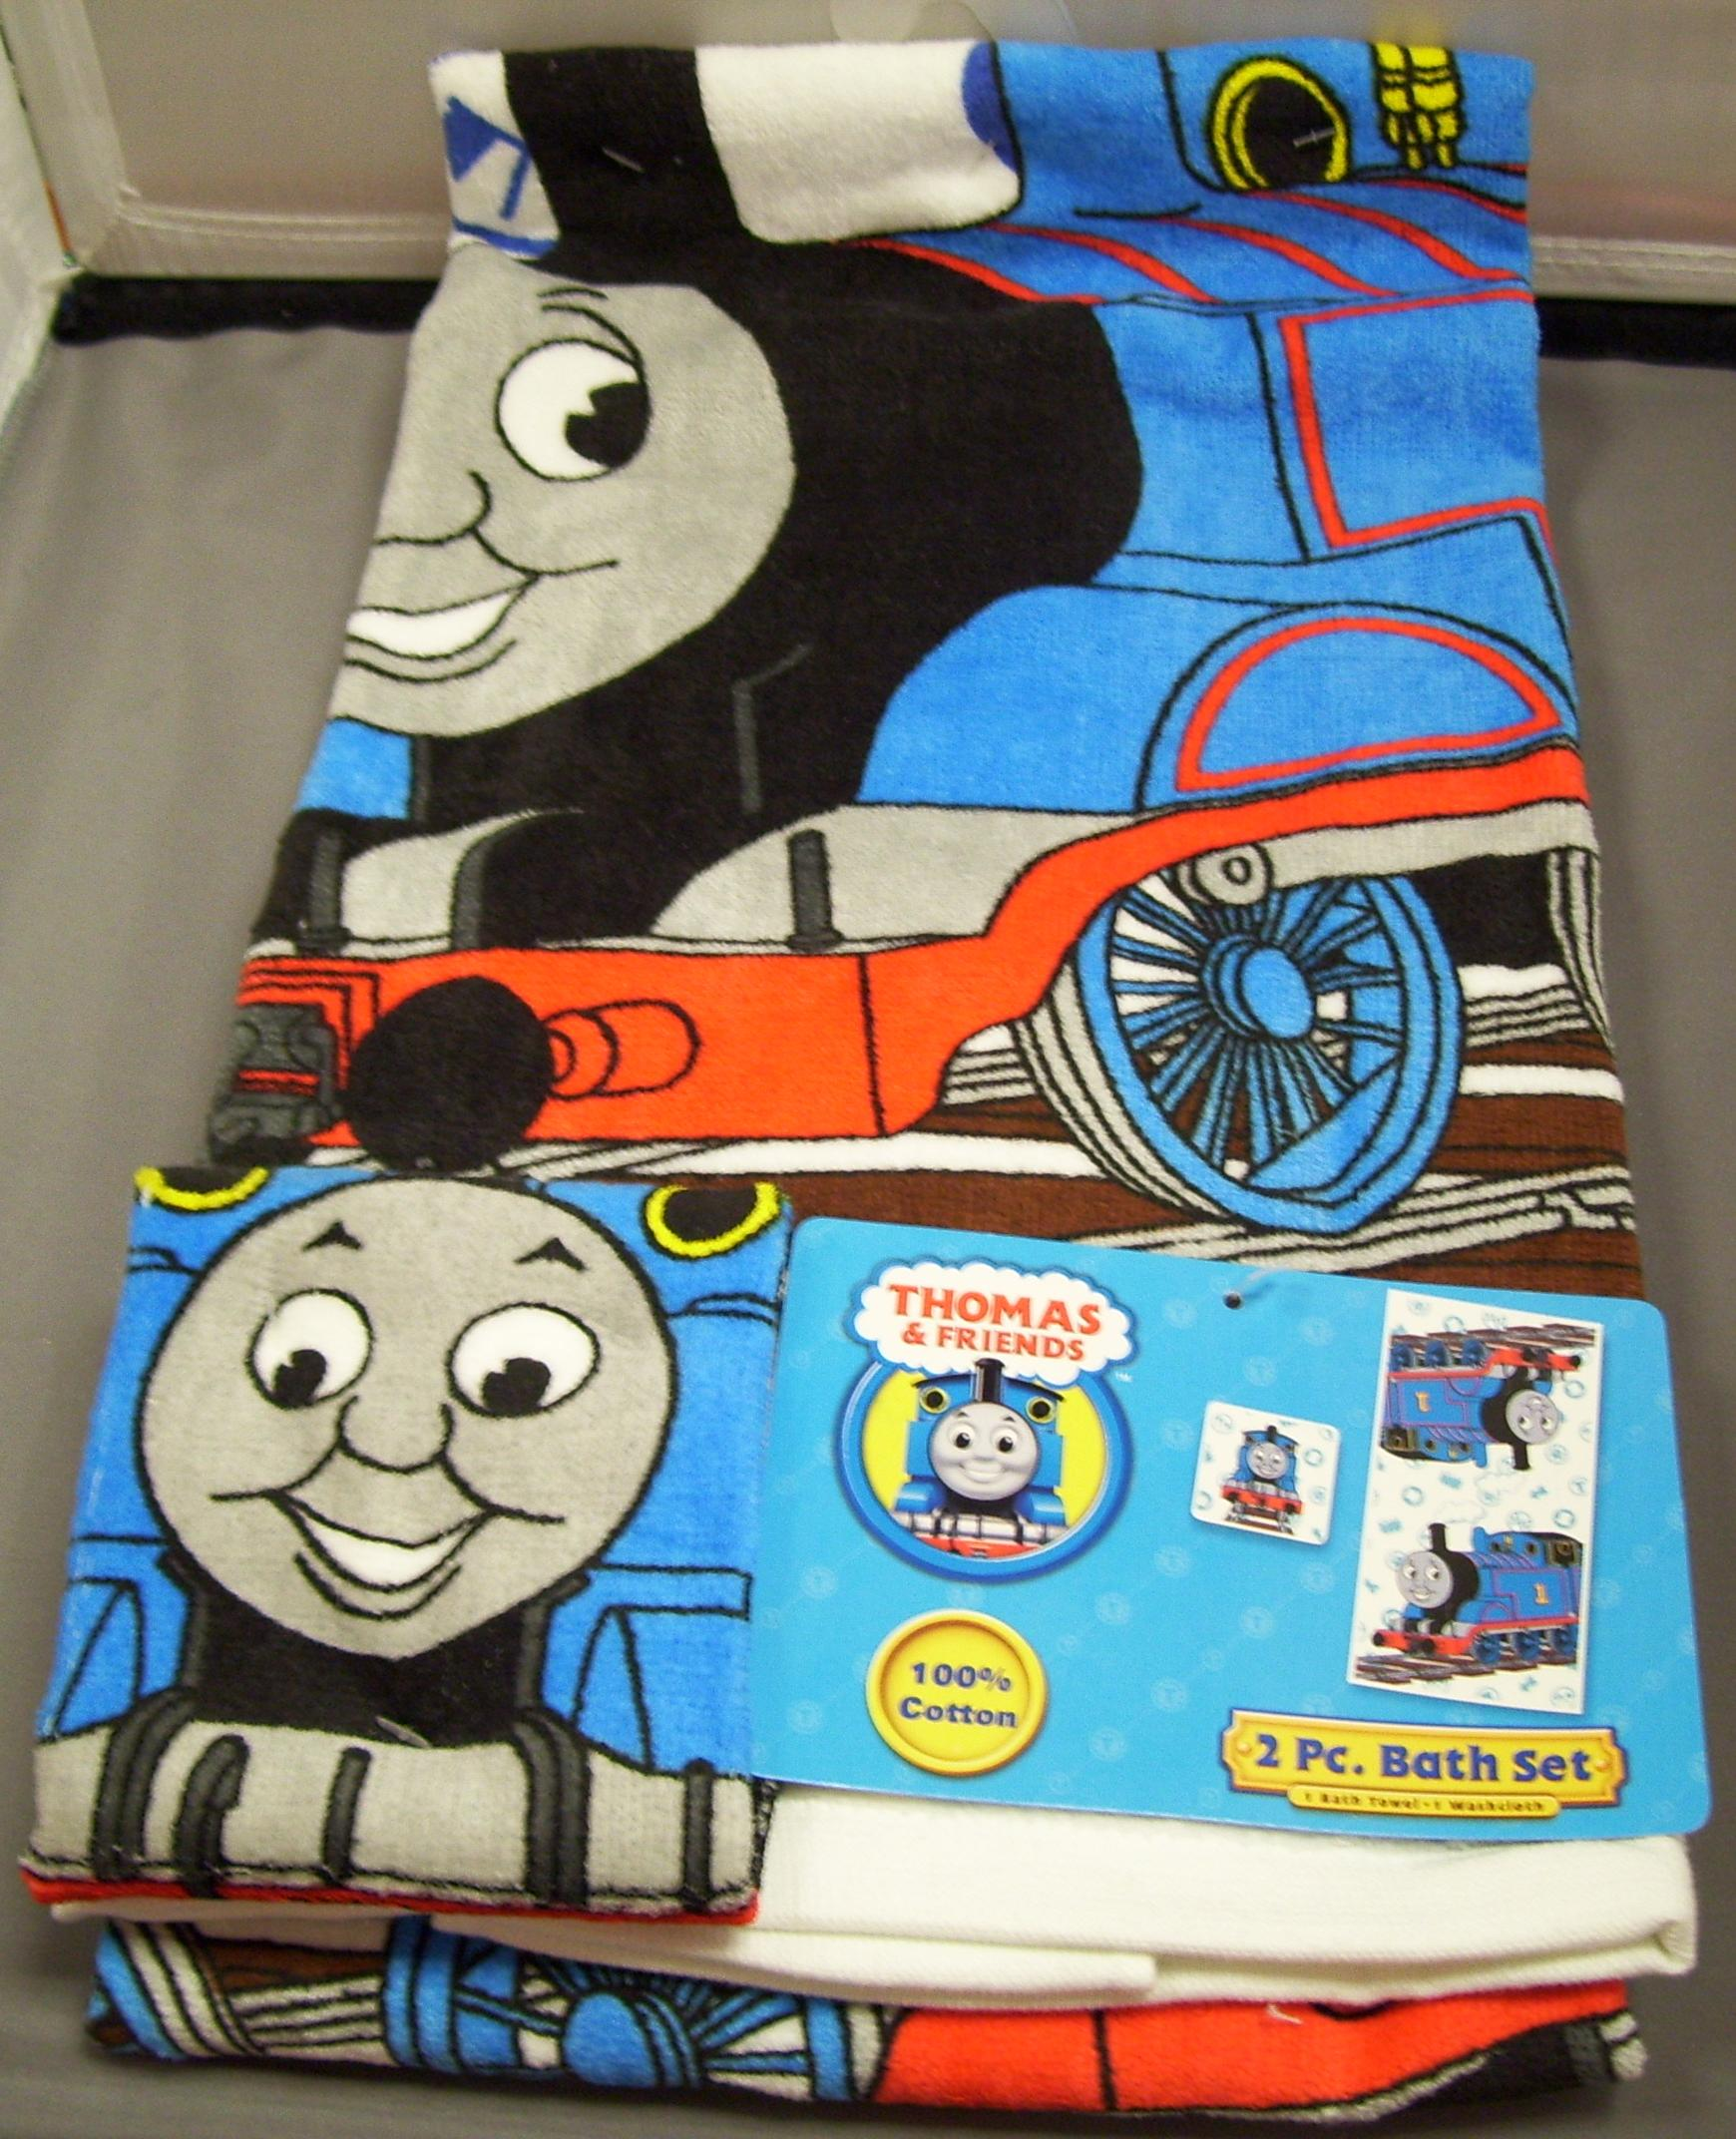 Towels bath time america39s best train toy hobby shop for Thomas the train bathroom set